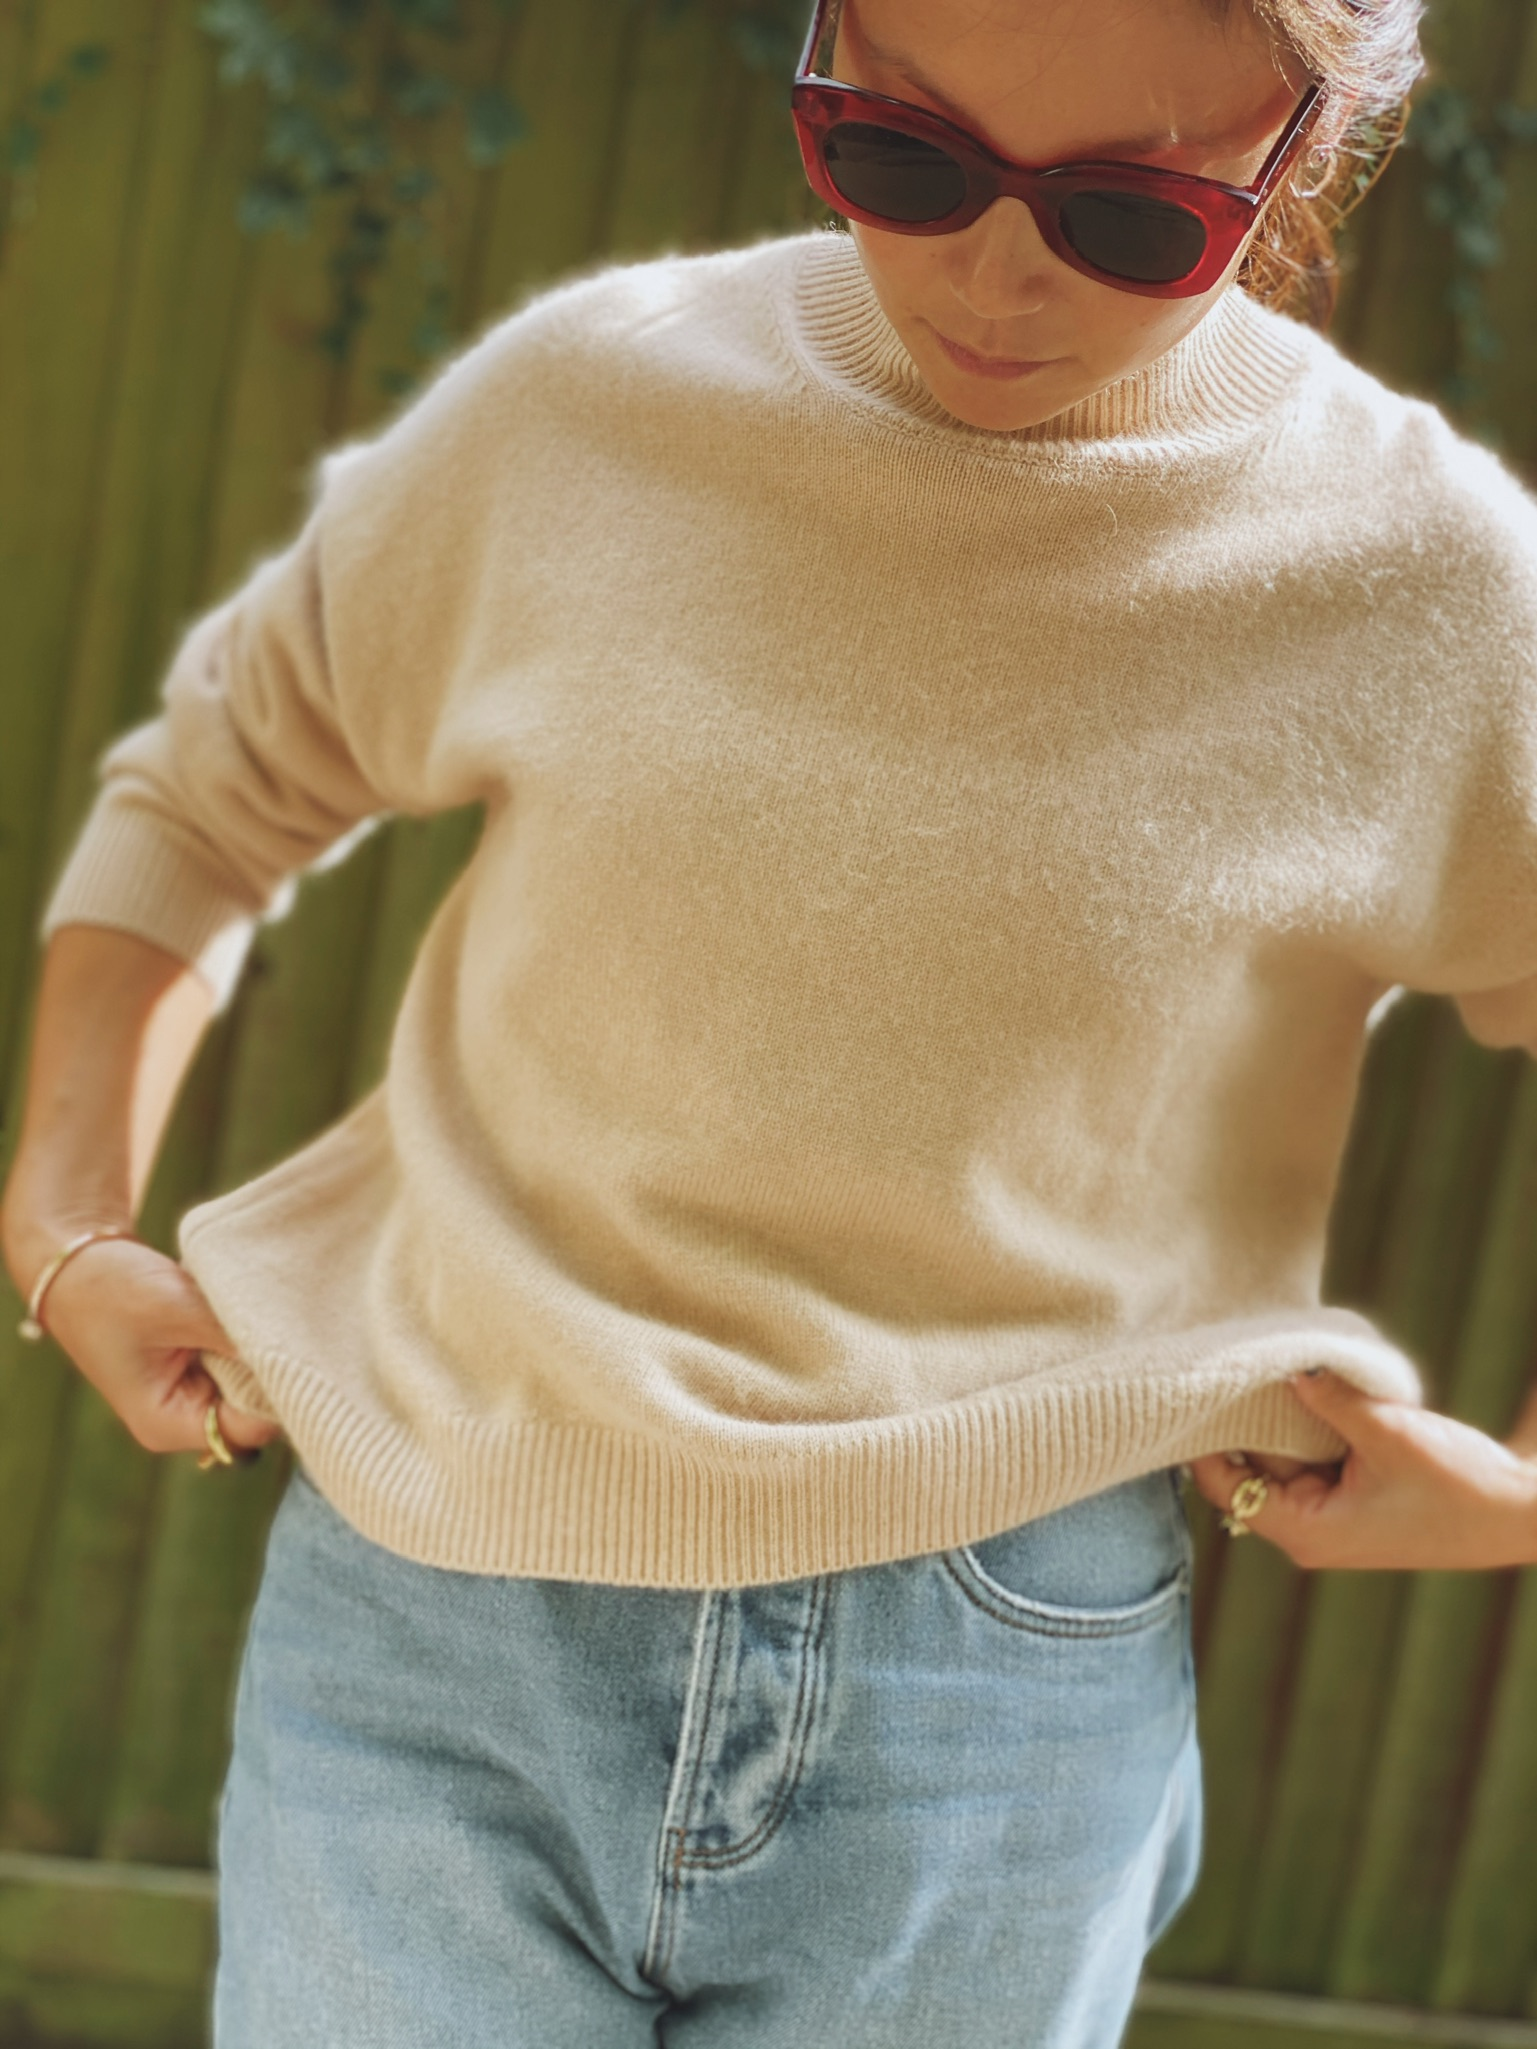 Lilly Cashmere Jumper - Beige by Curated Crowd Collective on curated-crowd.com